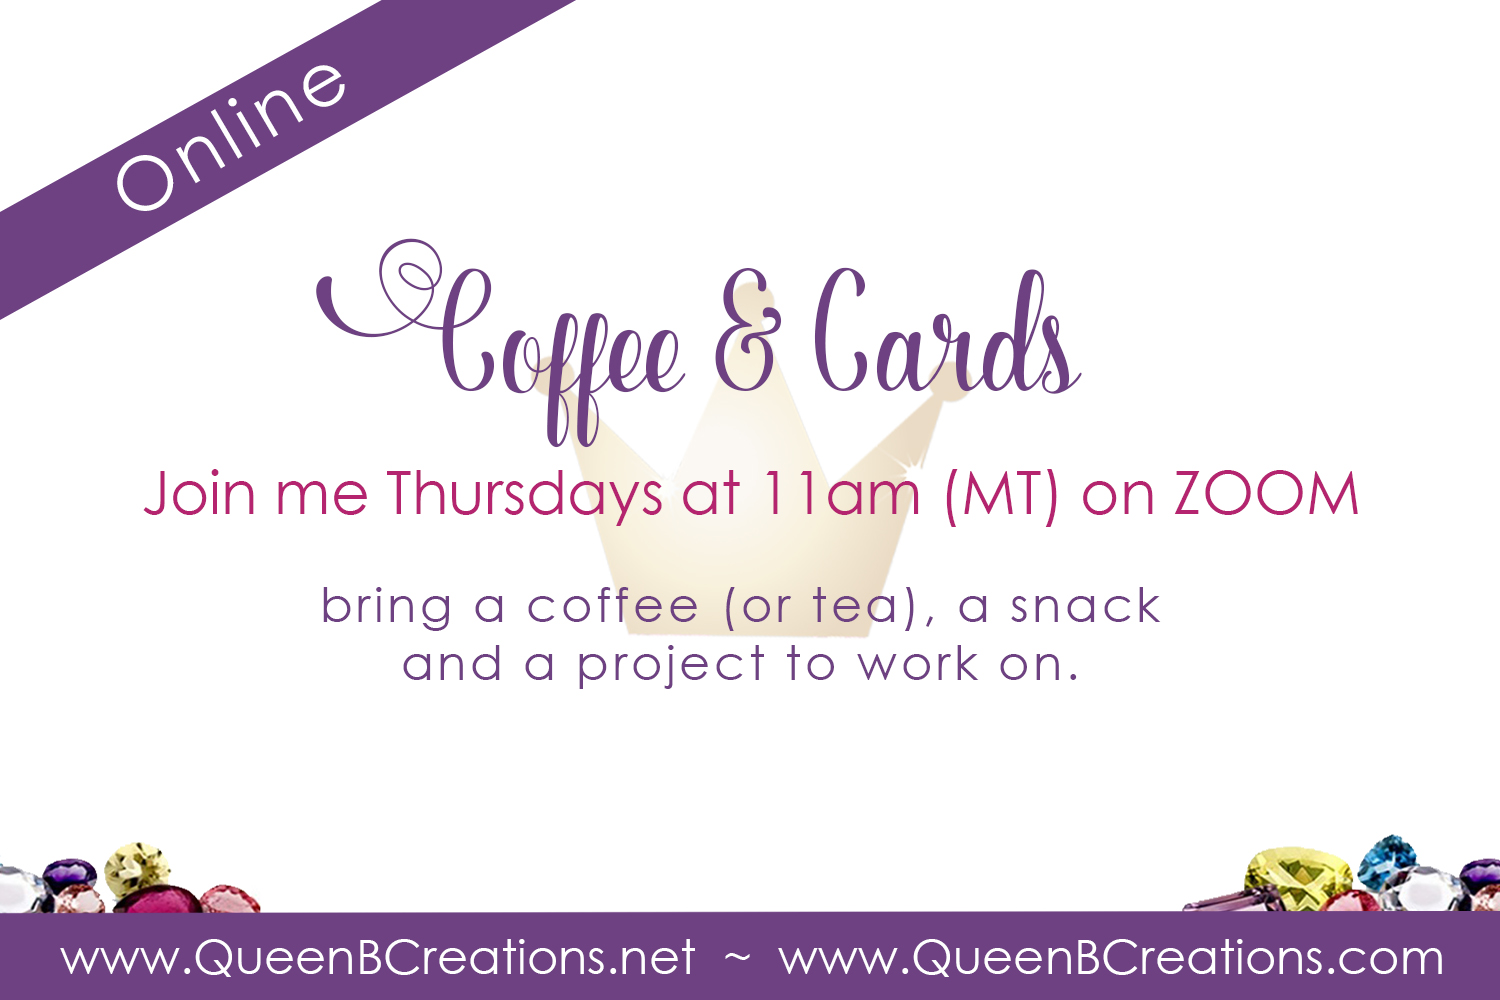 Coffee & Cards Event on Zoom - Come be crafty and social.